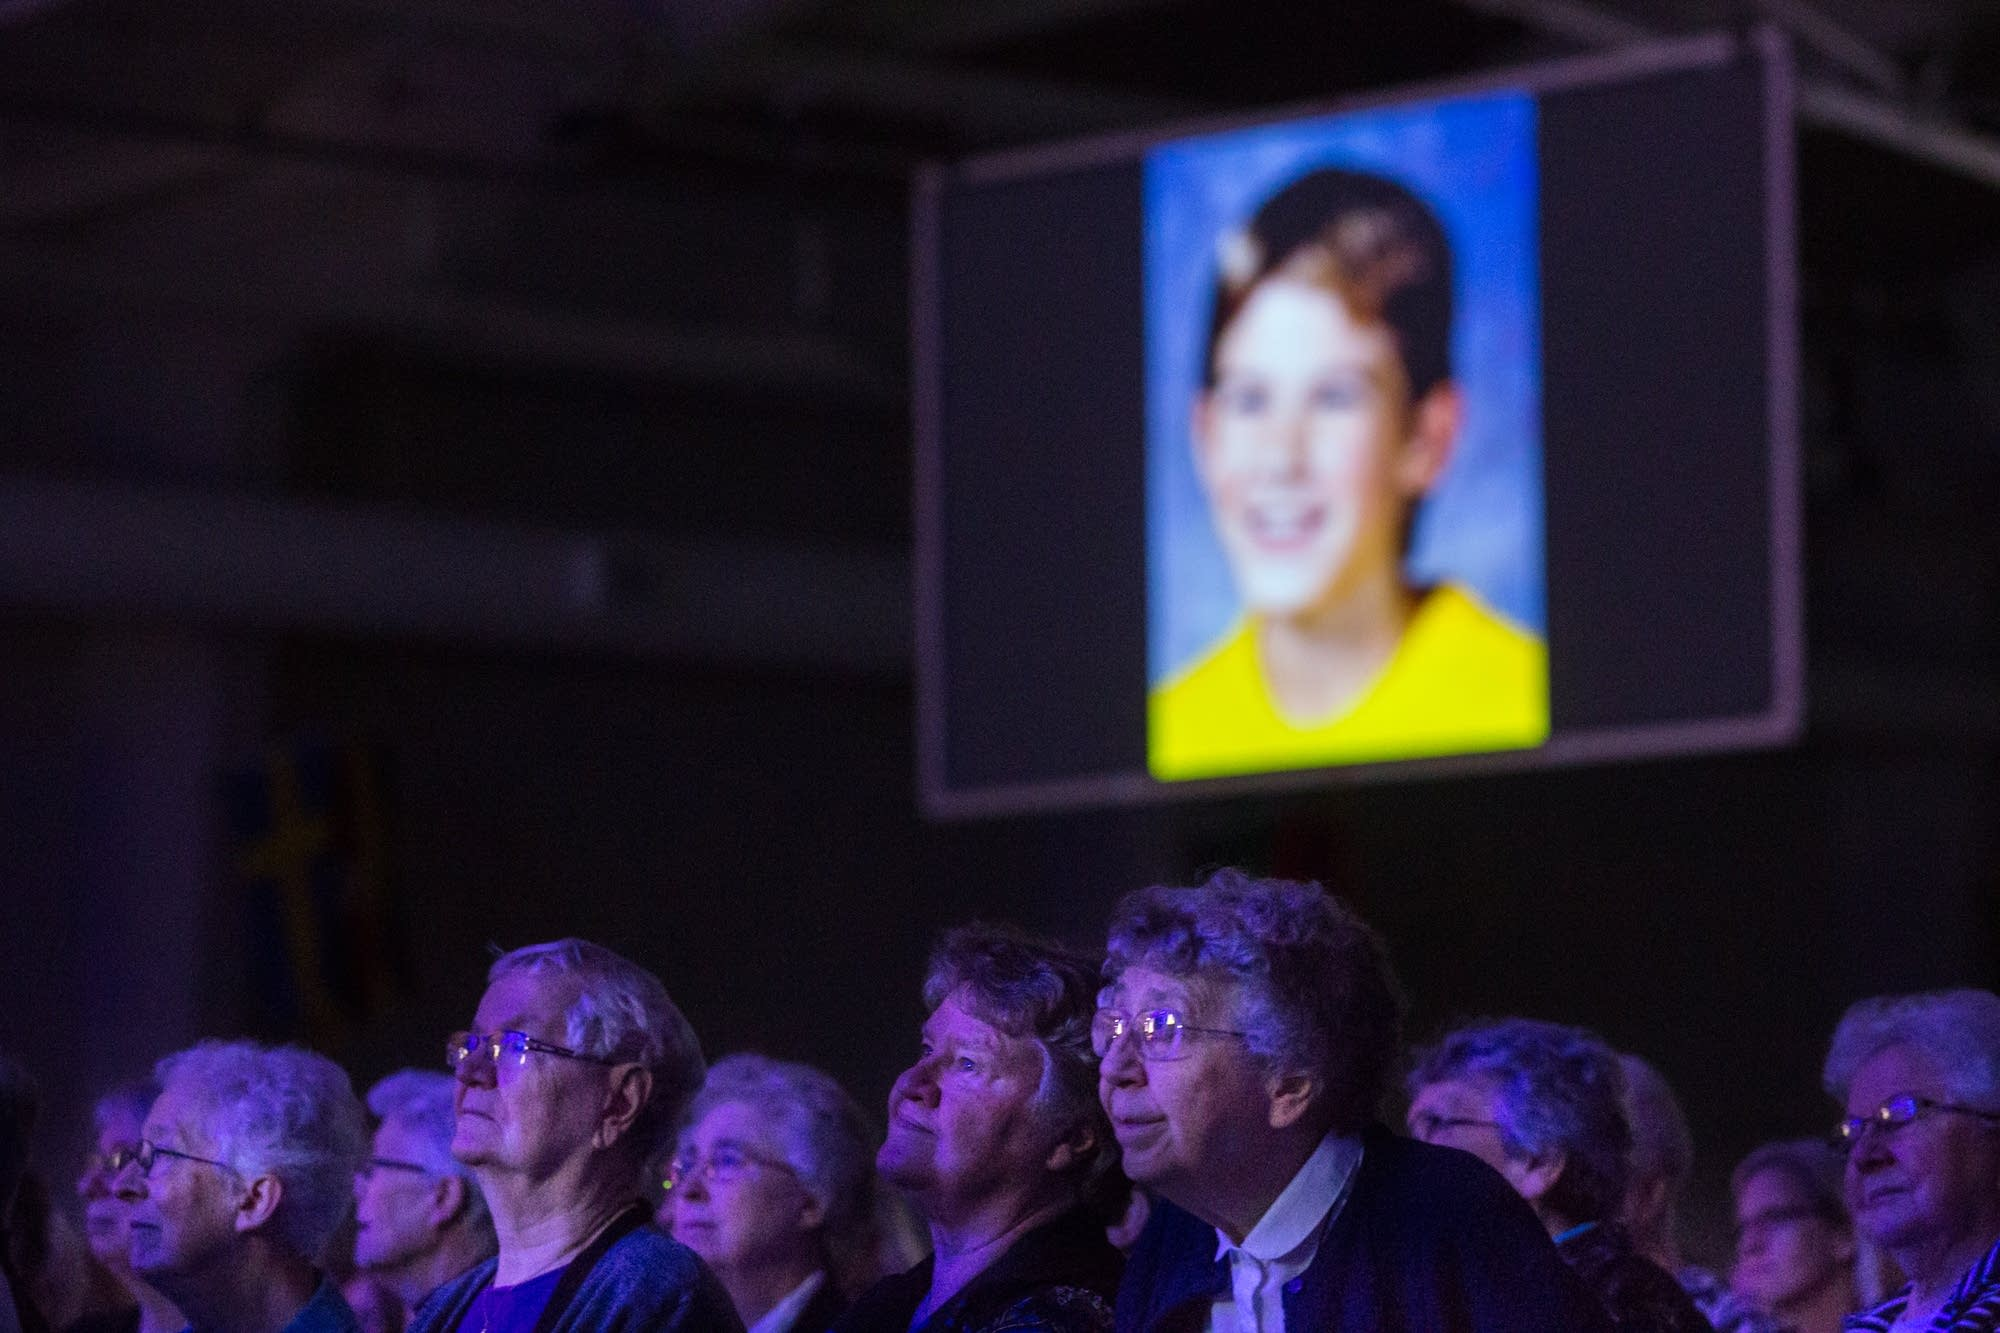 Saying goodbye to Jacob Wetterling